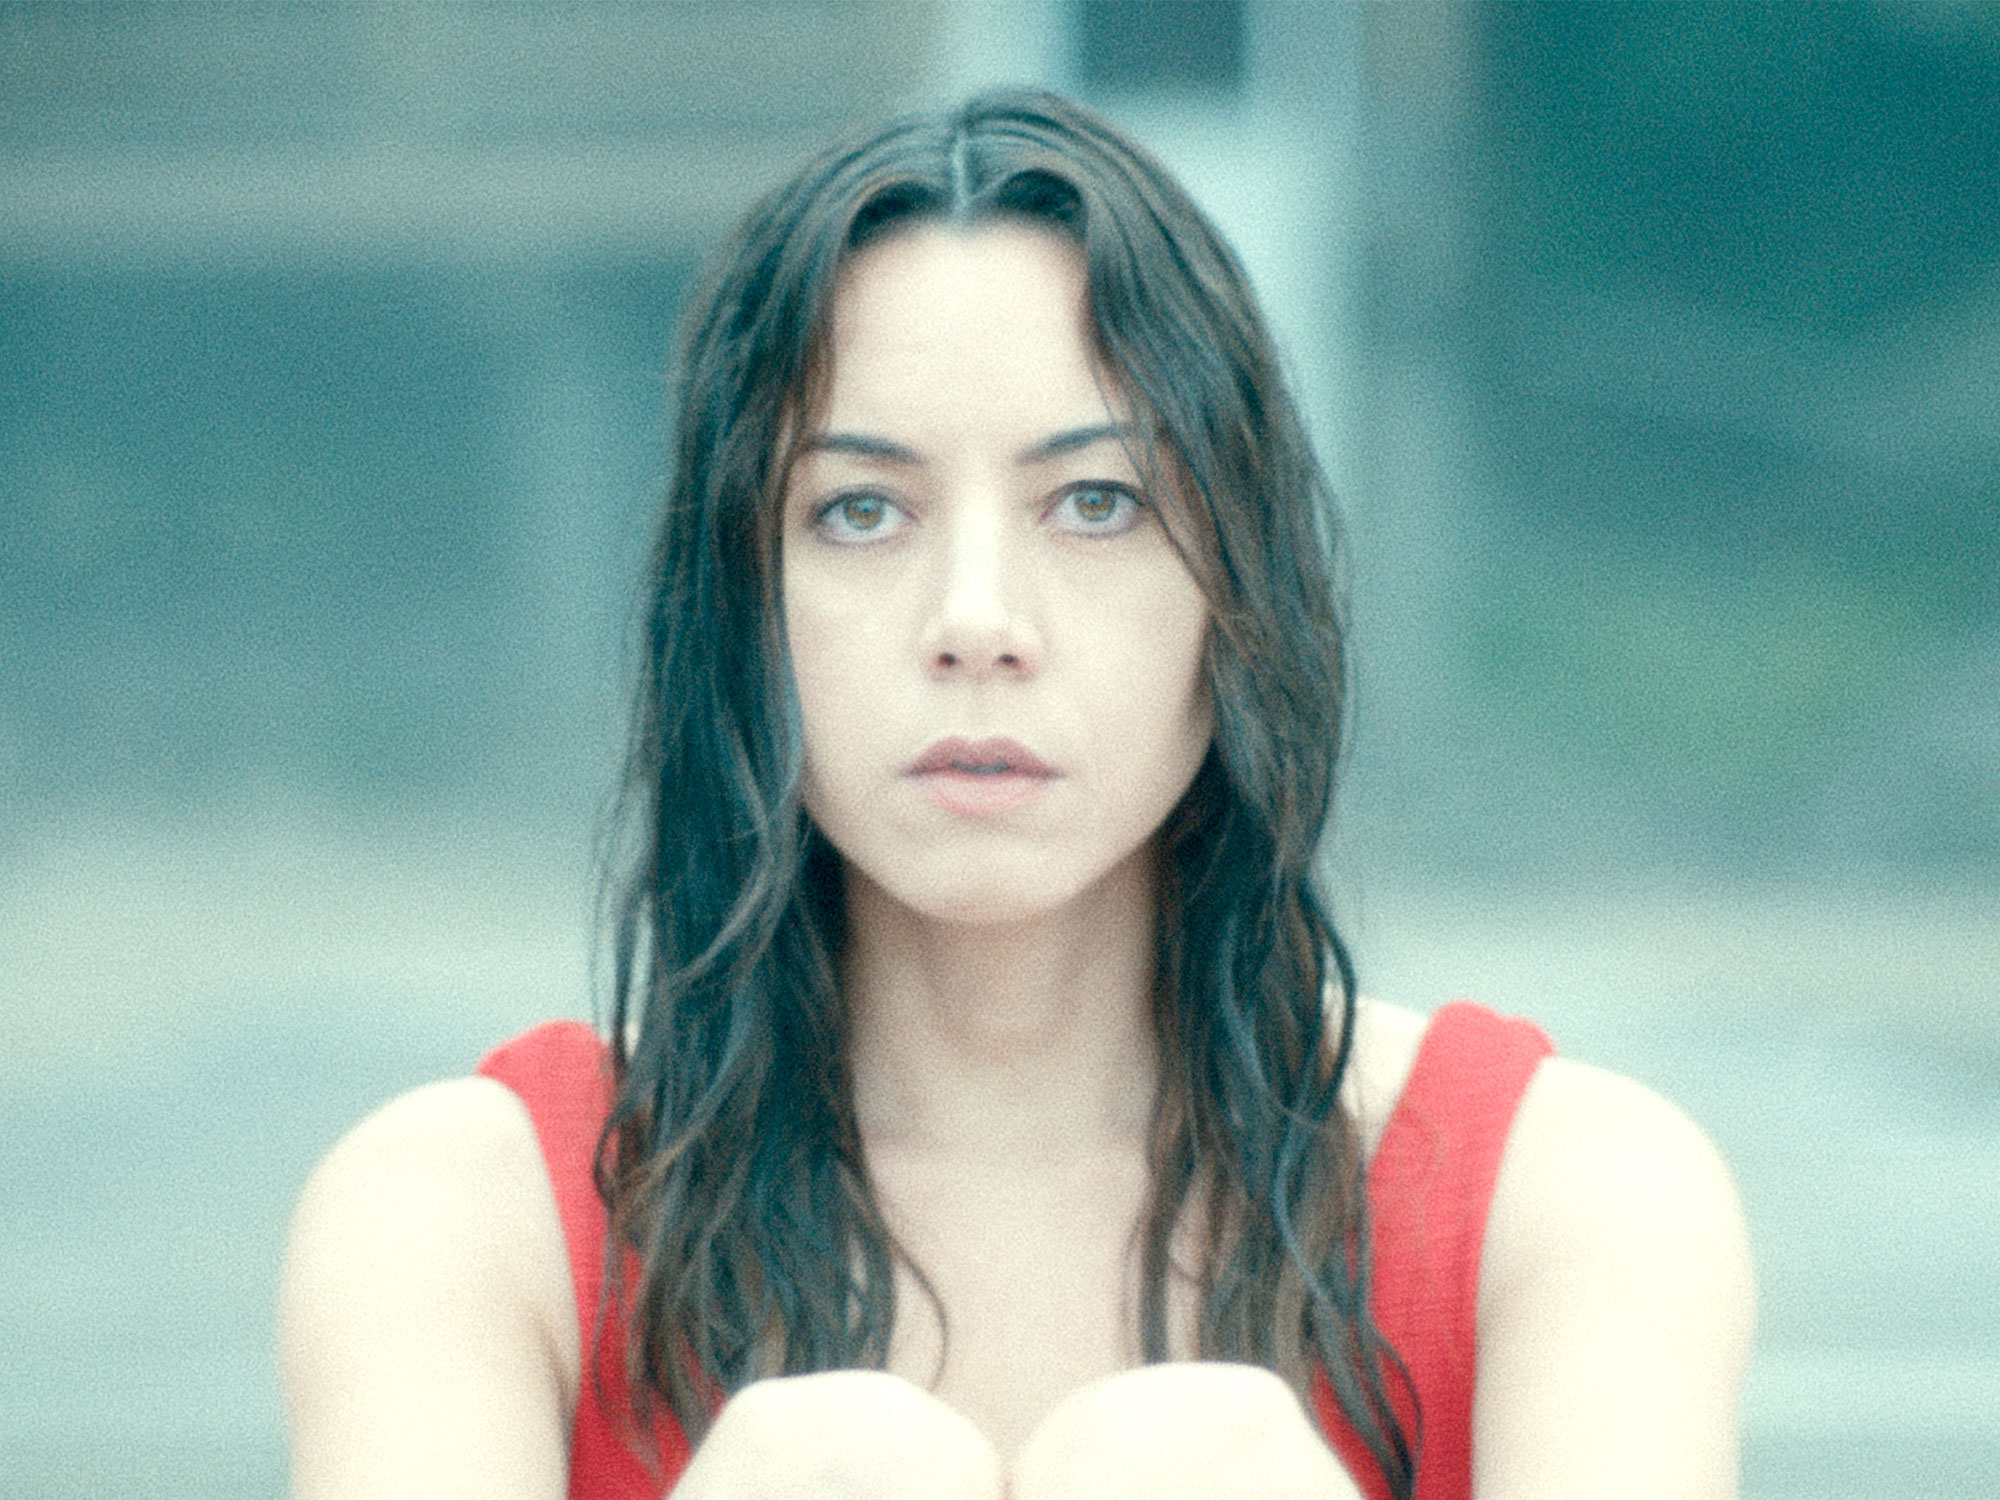 black bear aubrey plaza Celebs Before And After Surgery